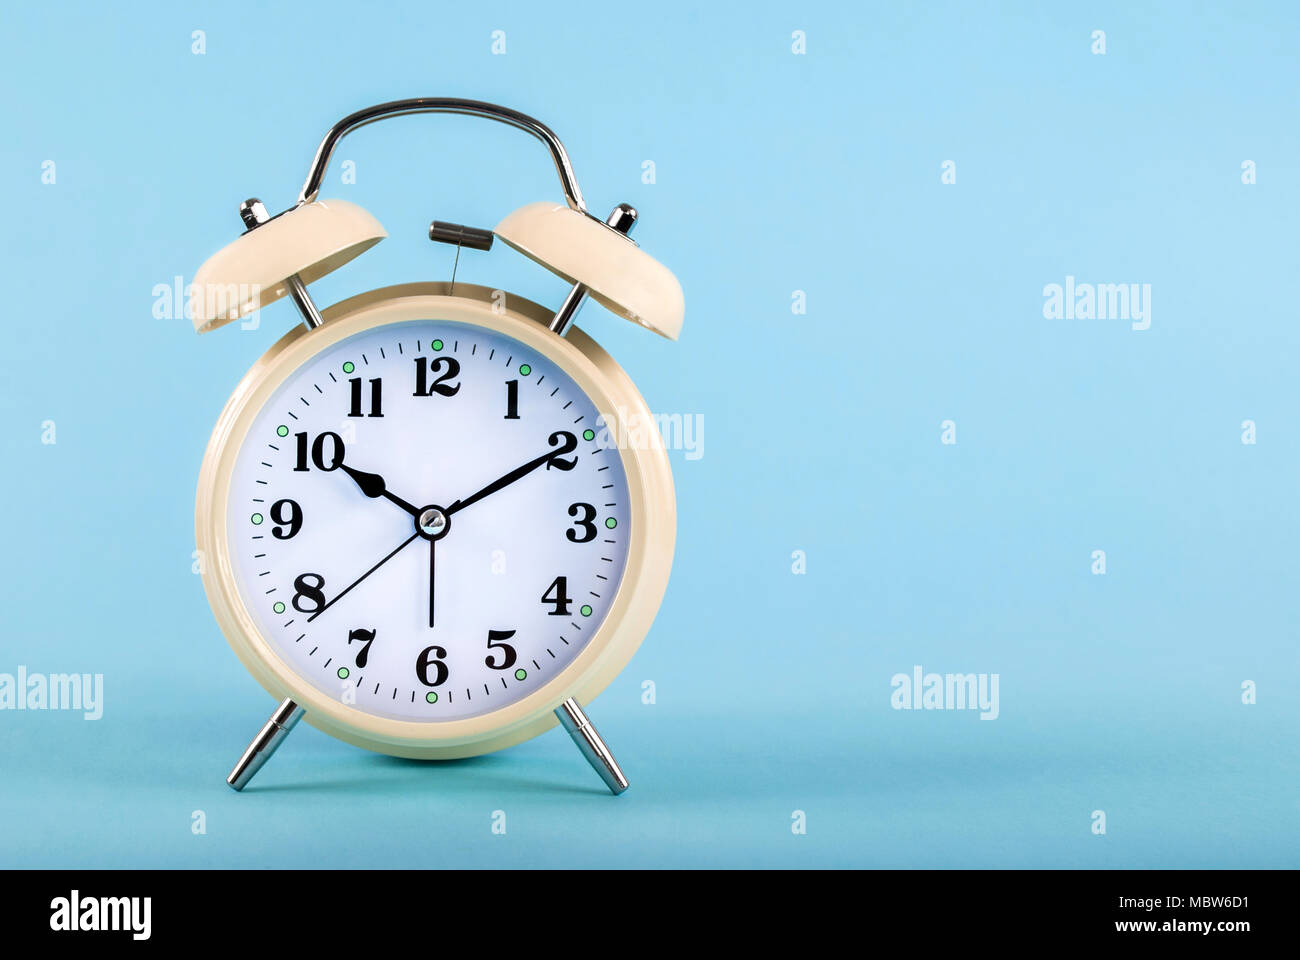 Old retro clock on blue background and space for text and editing - Stock Image